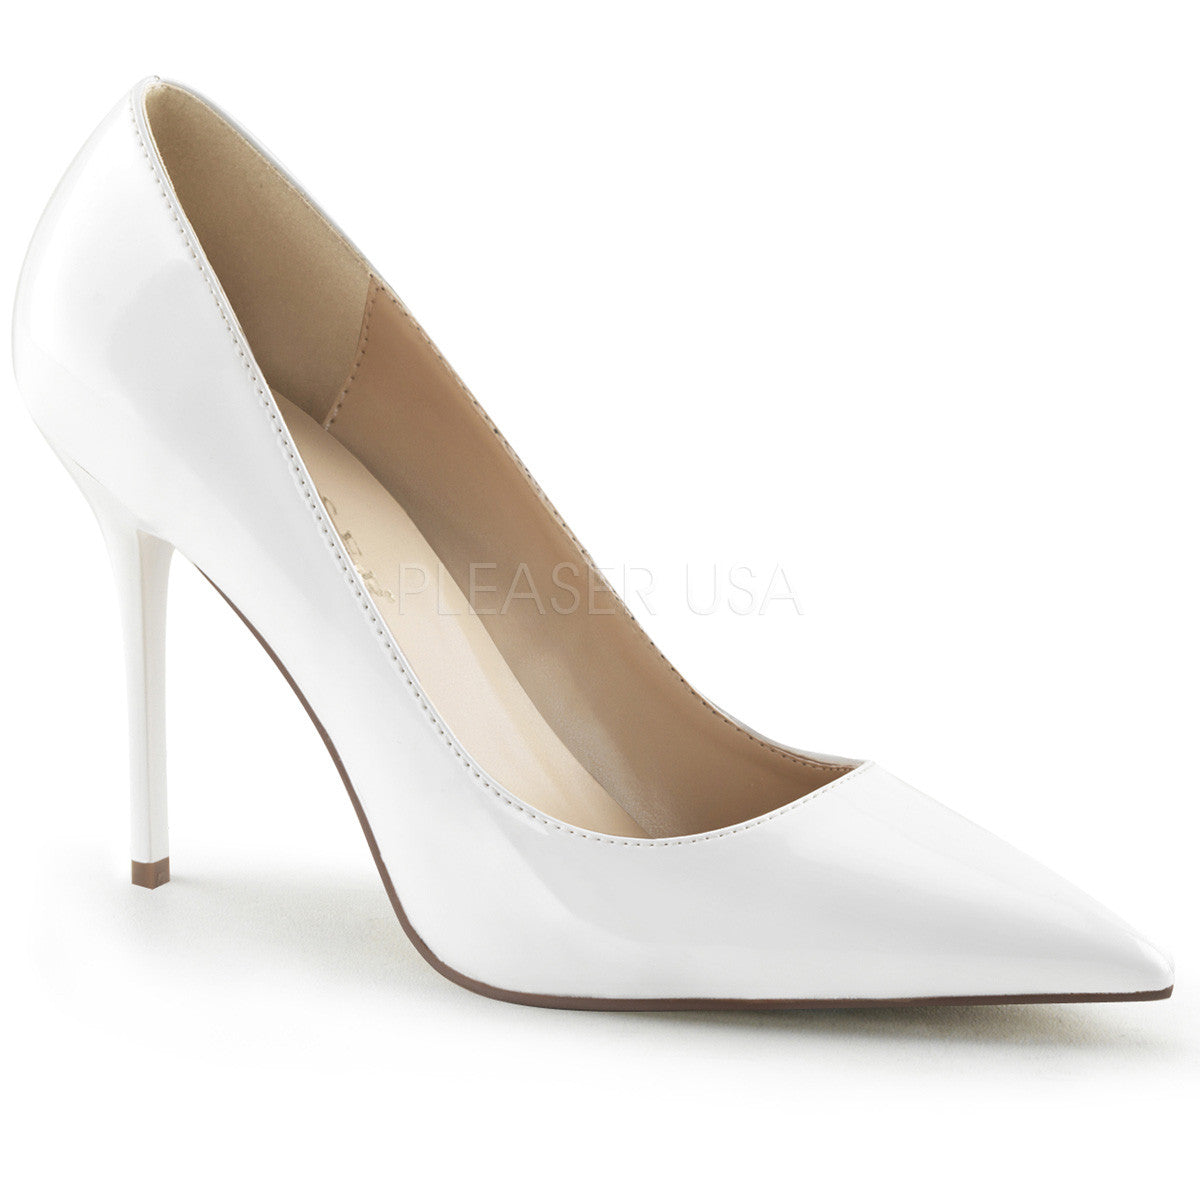 PLEASER CLASSIQUE-20 White Pat Pumps - Shoecup.com - 1